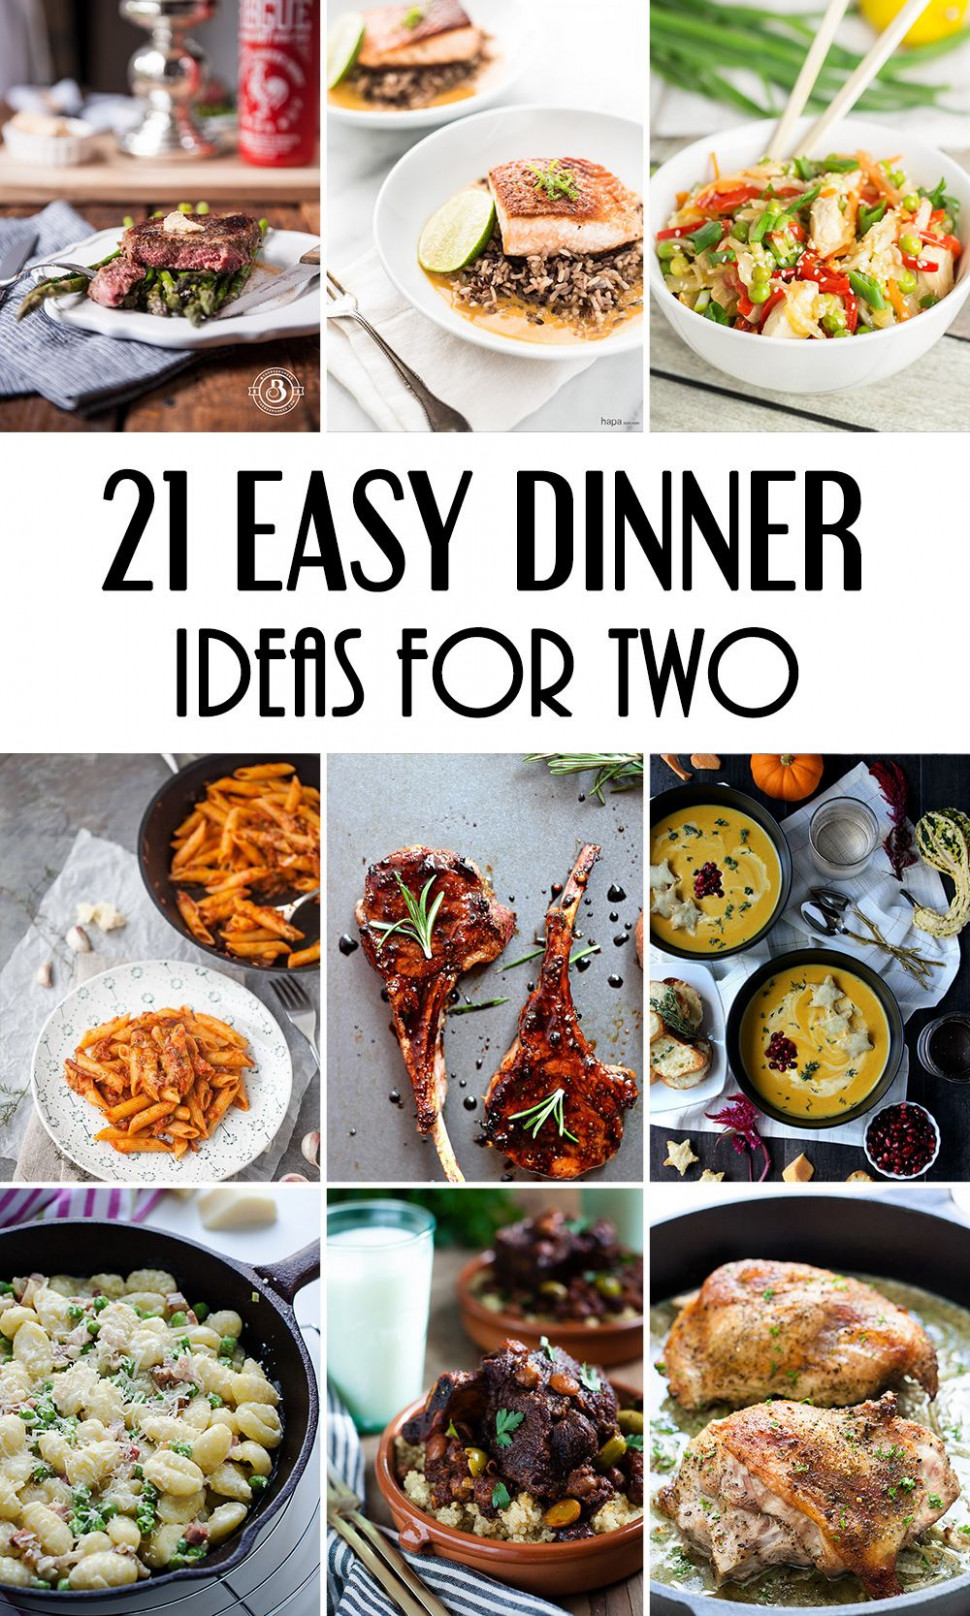 10 Easy Dinner Ideas For Two That Will Impress Your Loved …